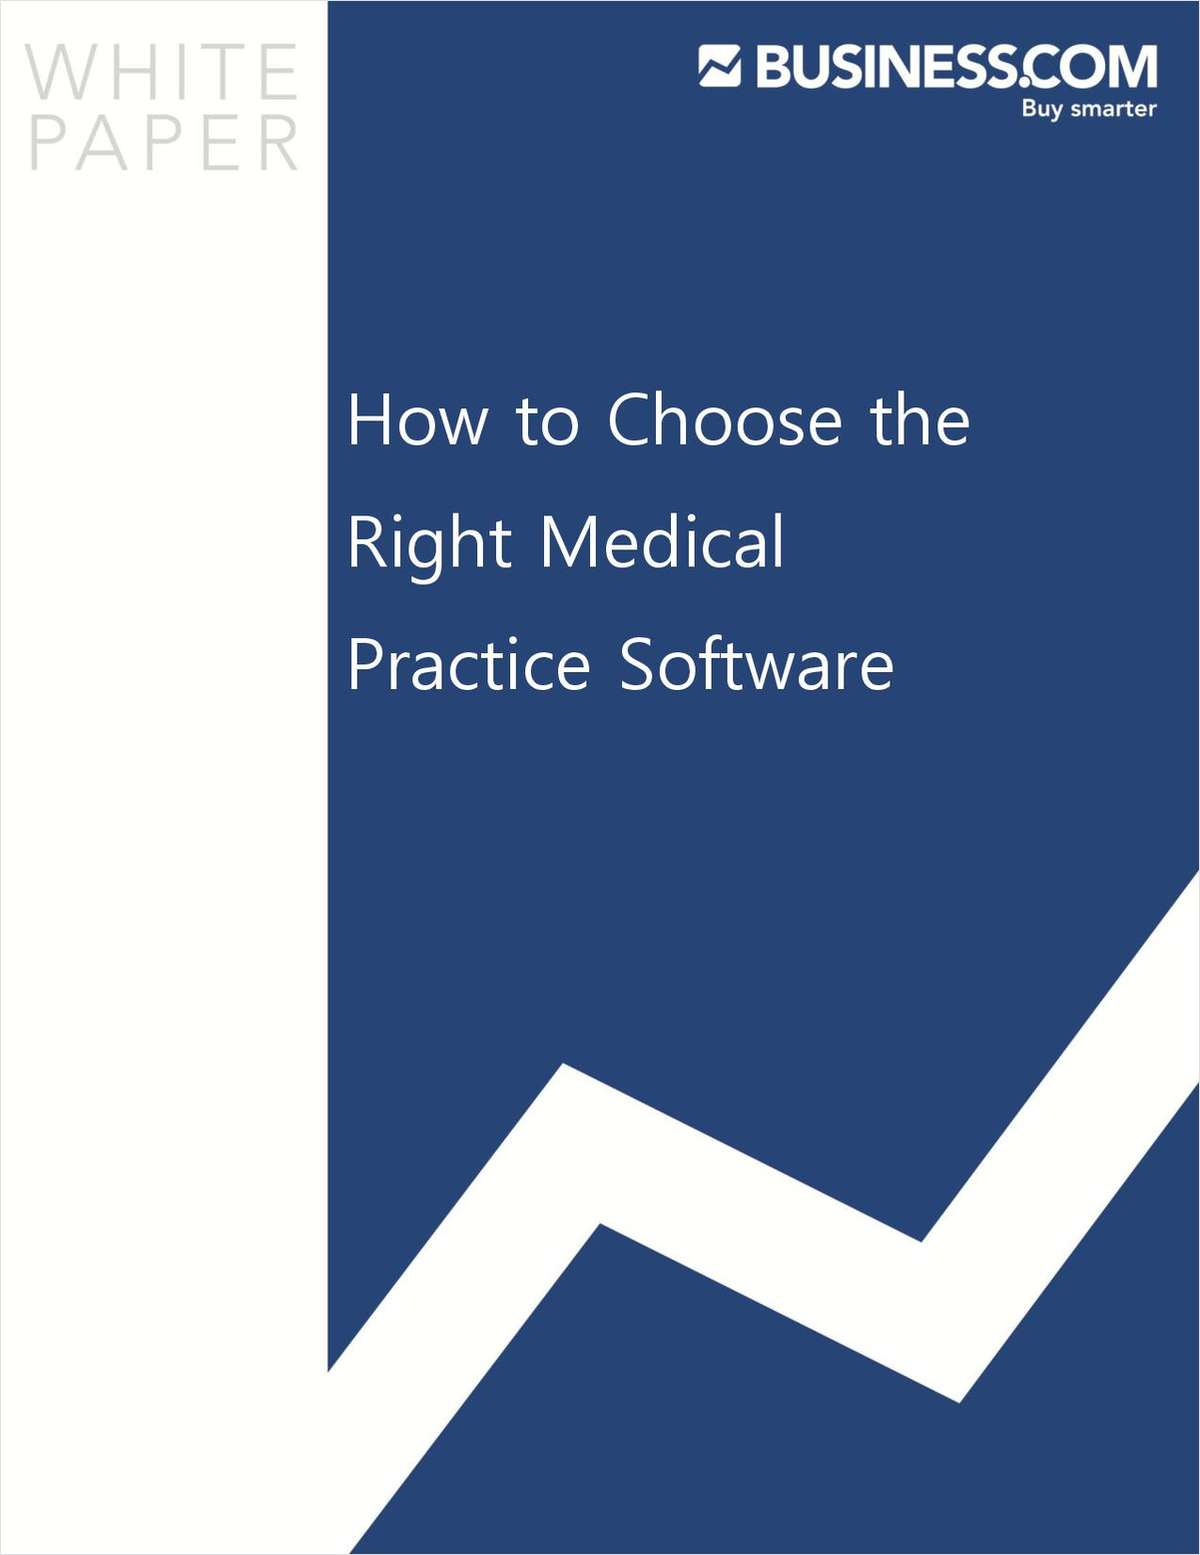 How to Choose the Right Medical Practice Software